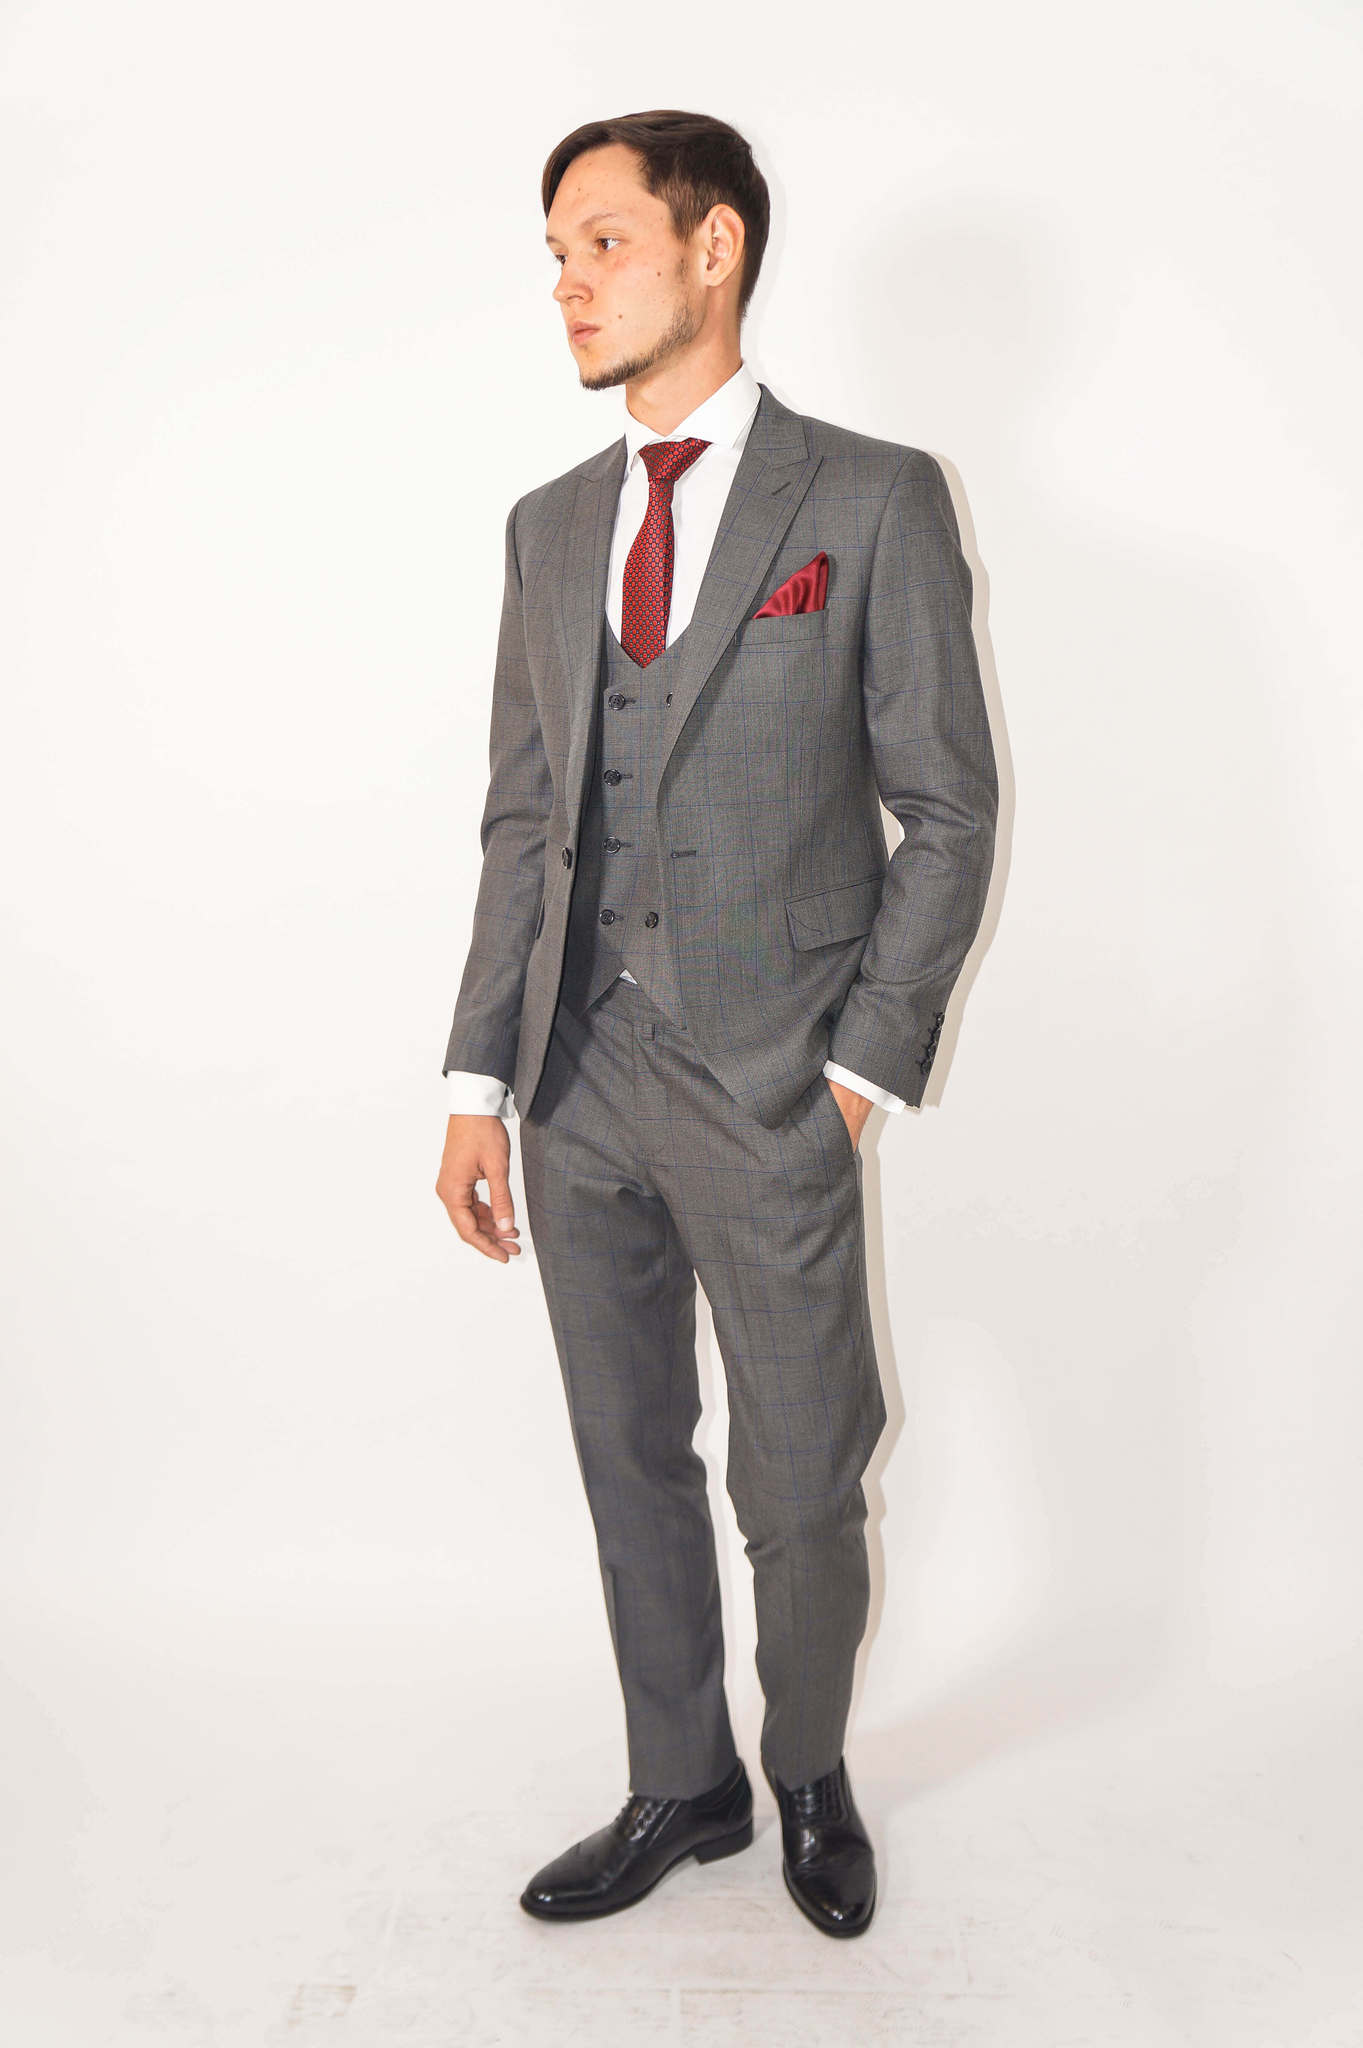 Костюмы Slim fit CESARE MARIANO / Костюм - тройка slim fit DSC01940.jpg